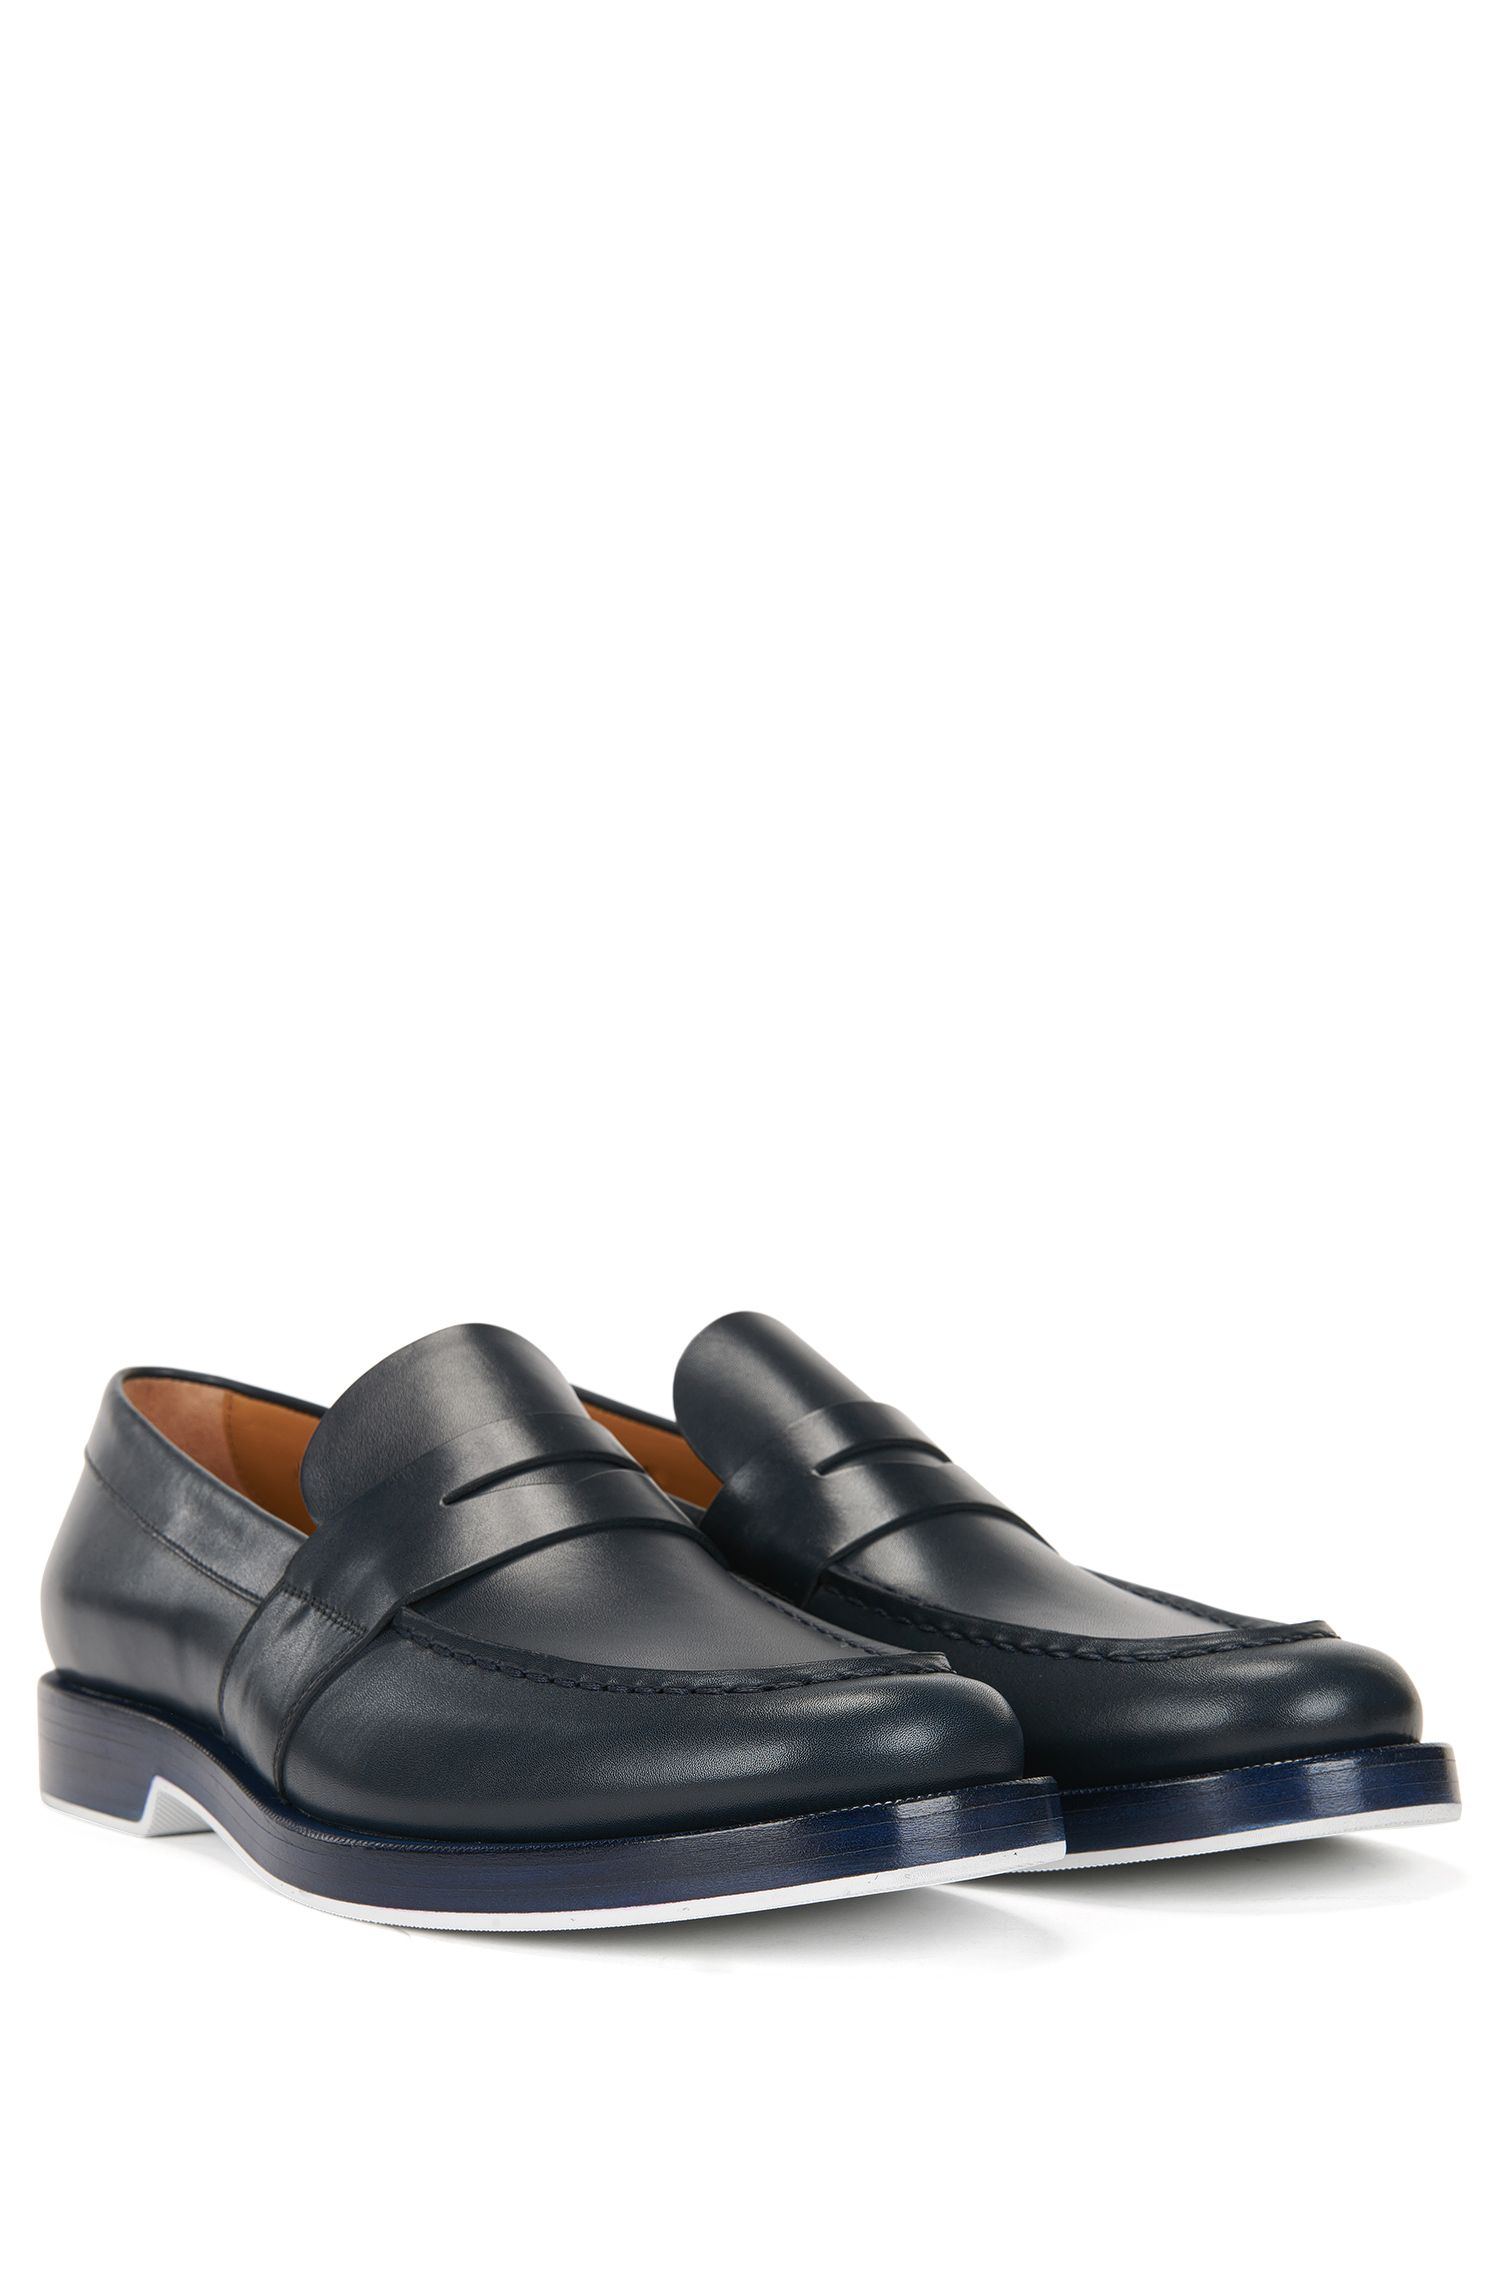 Penny loafers in calf leather